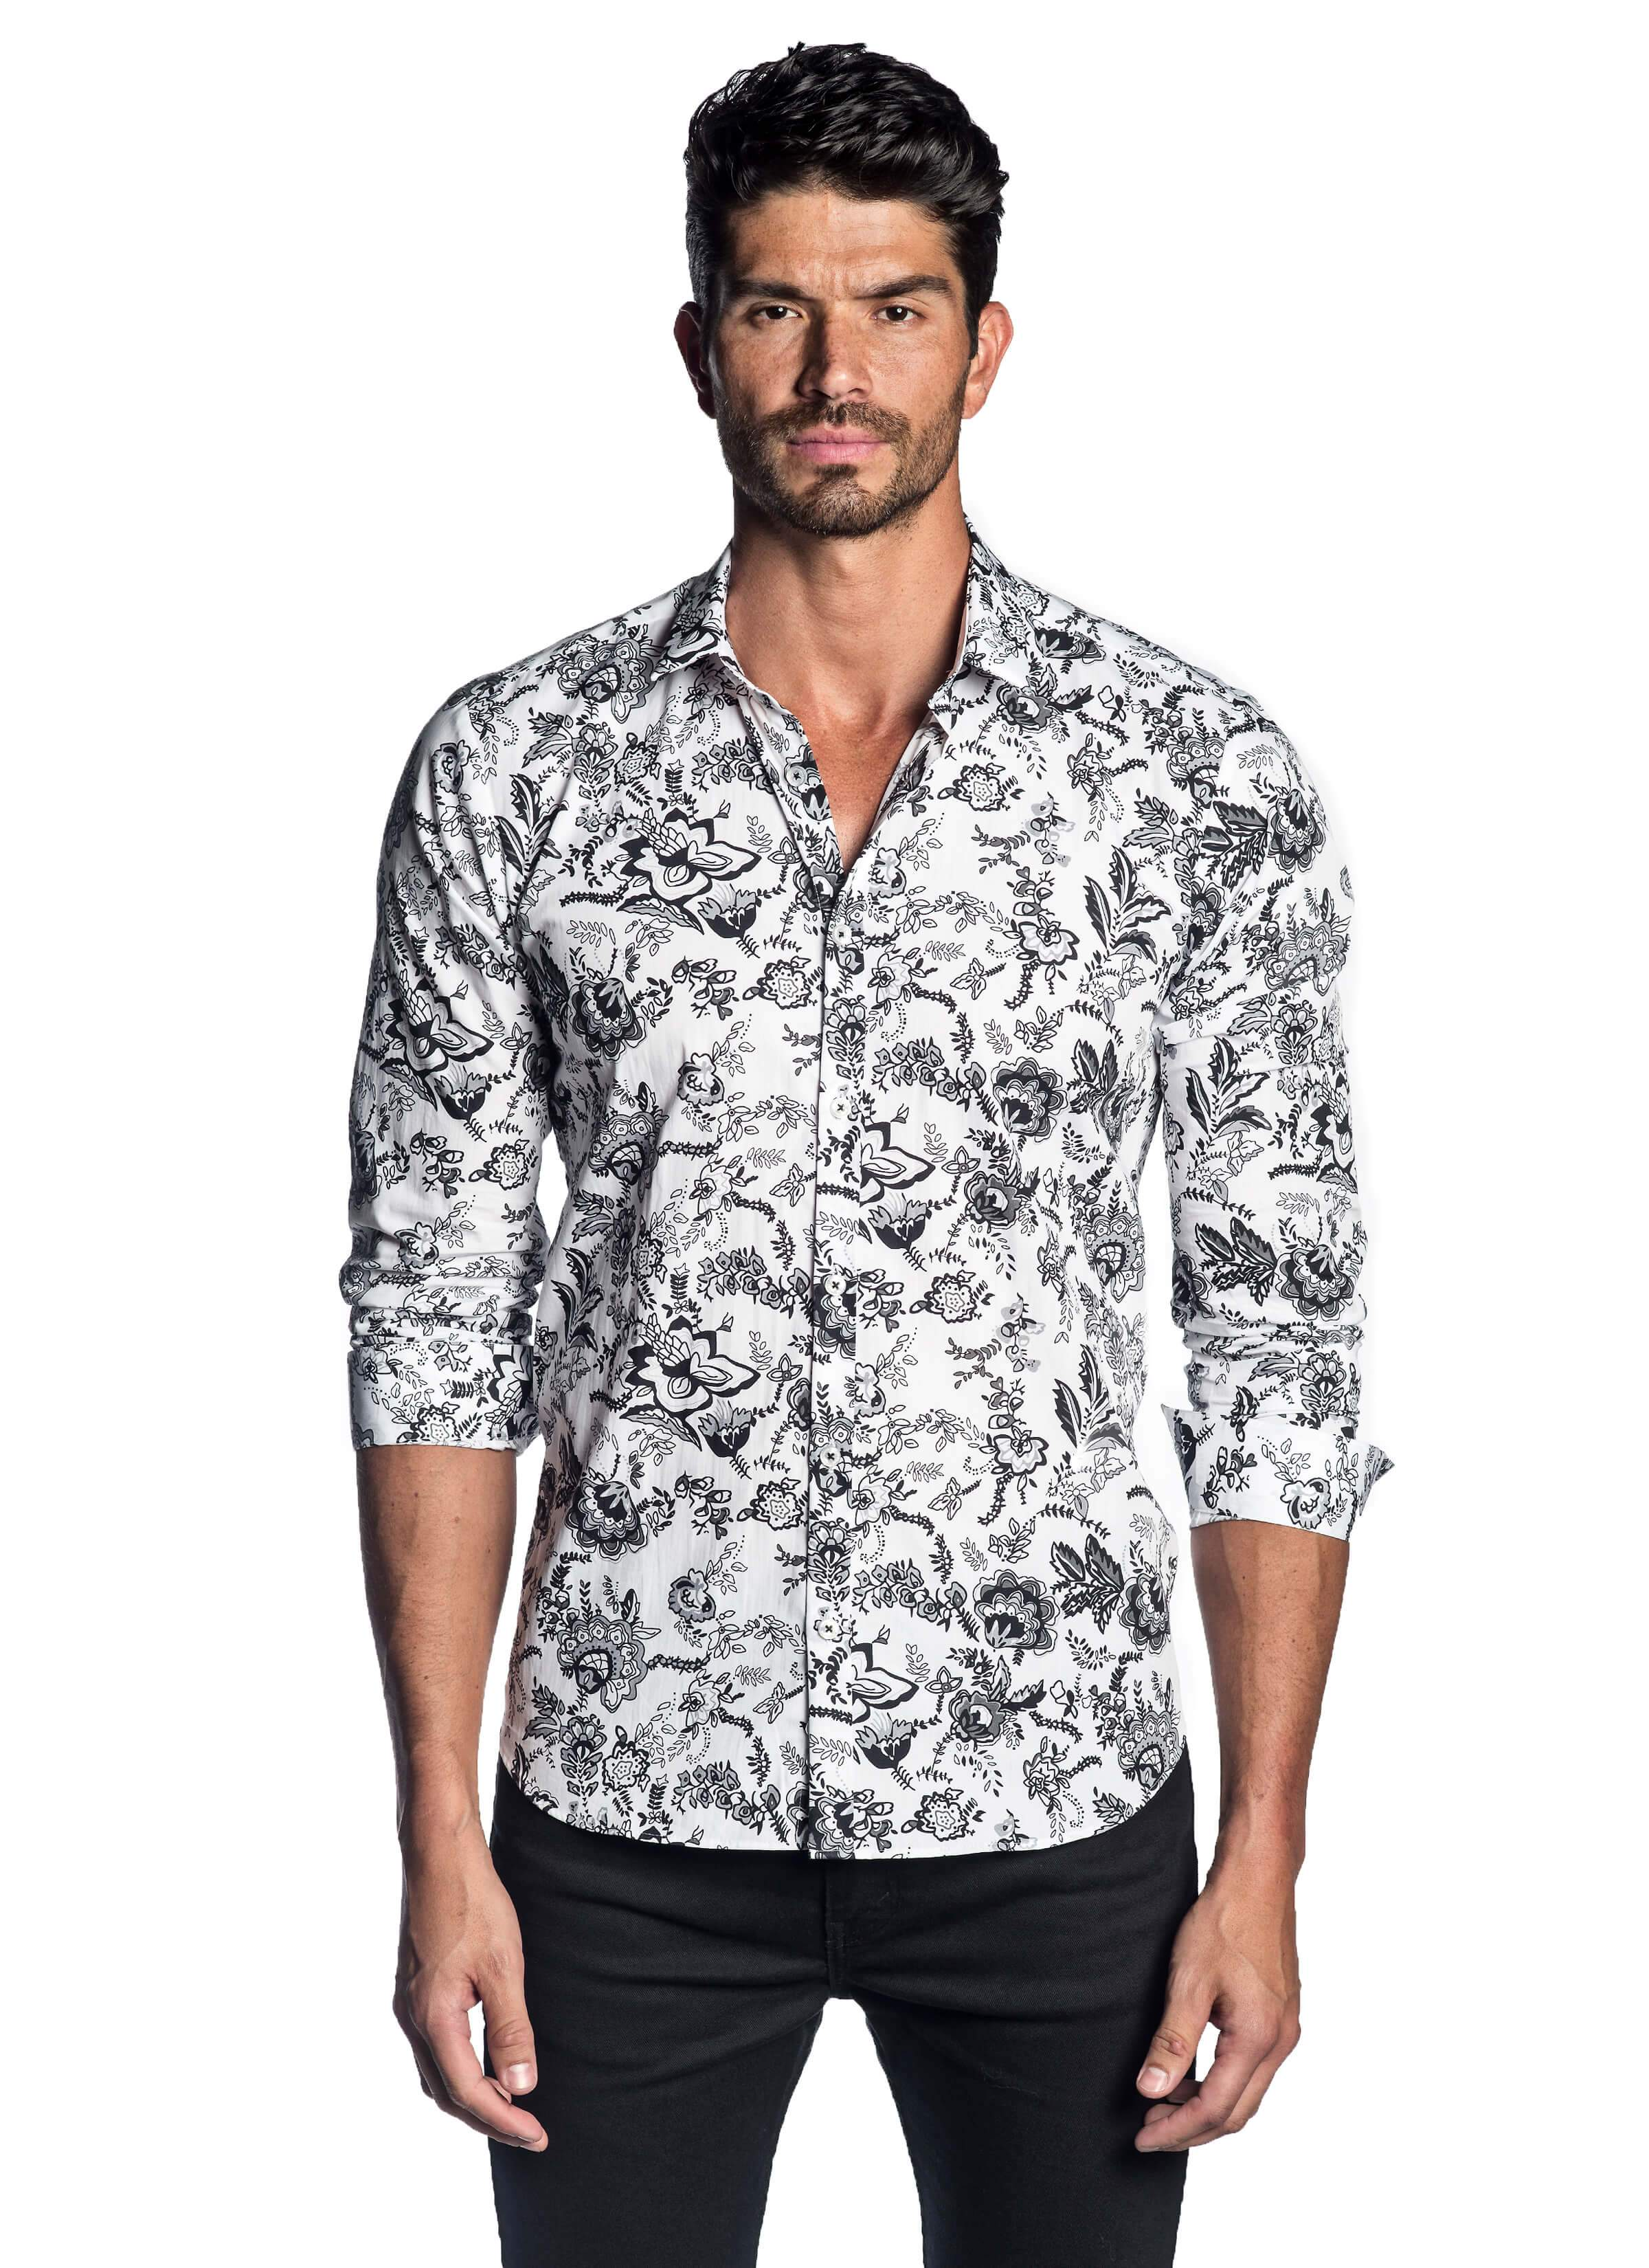 White and Black Floral Shirt for Men AH-T-2056 - Jared Lang